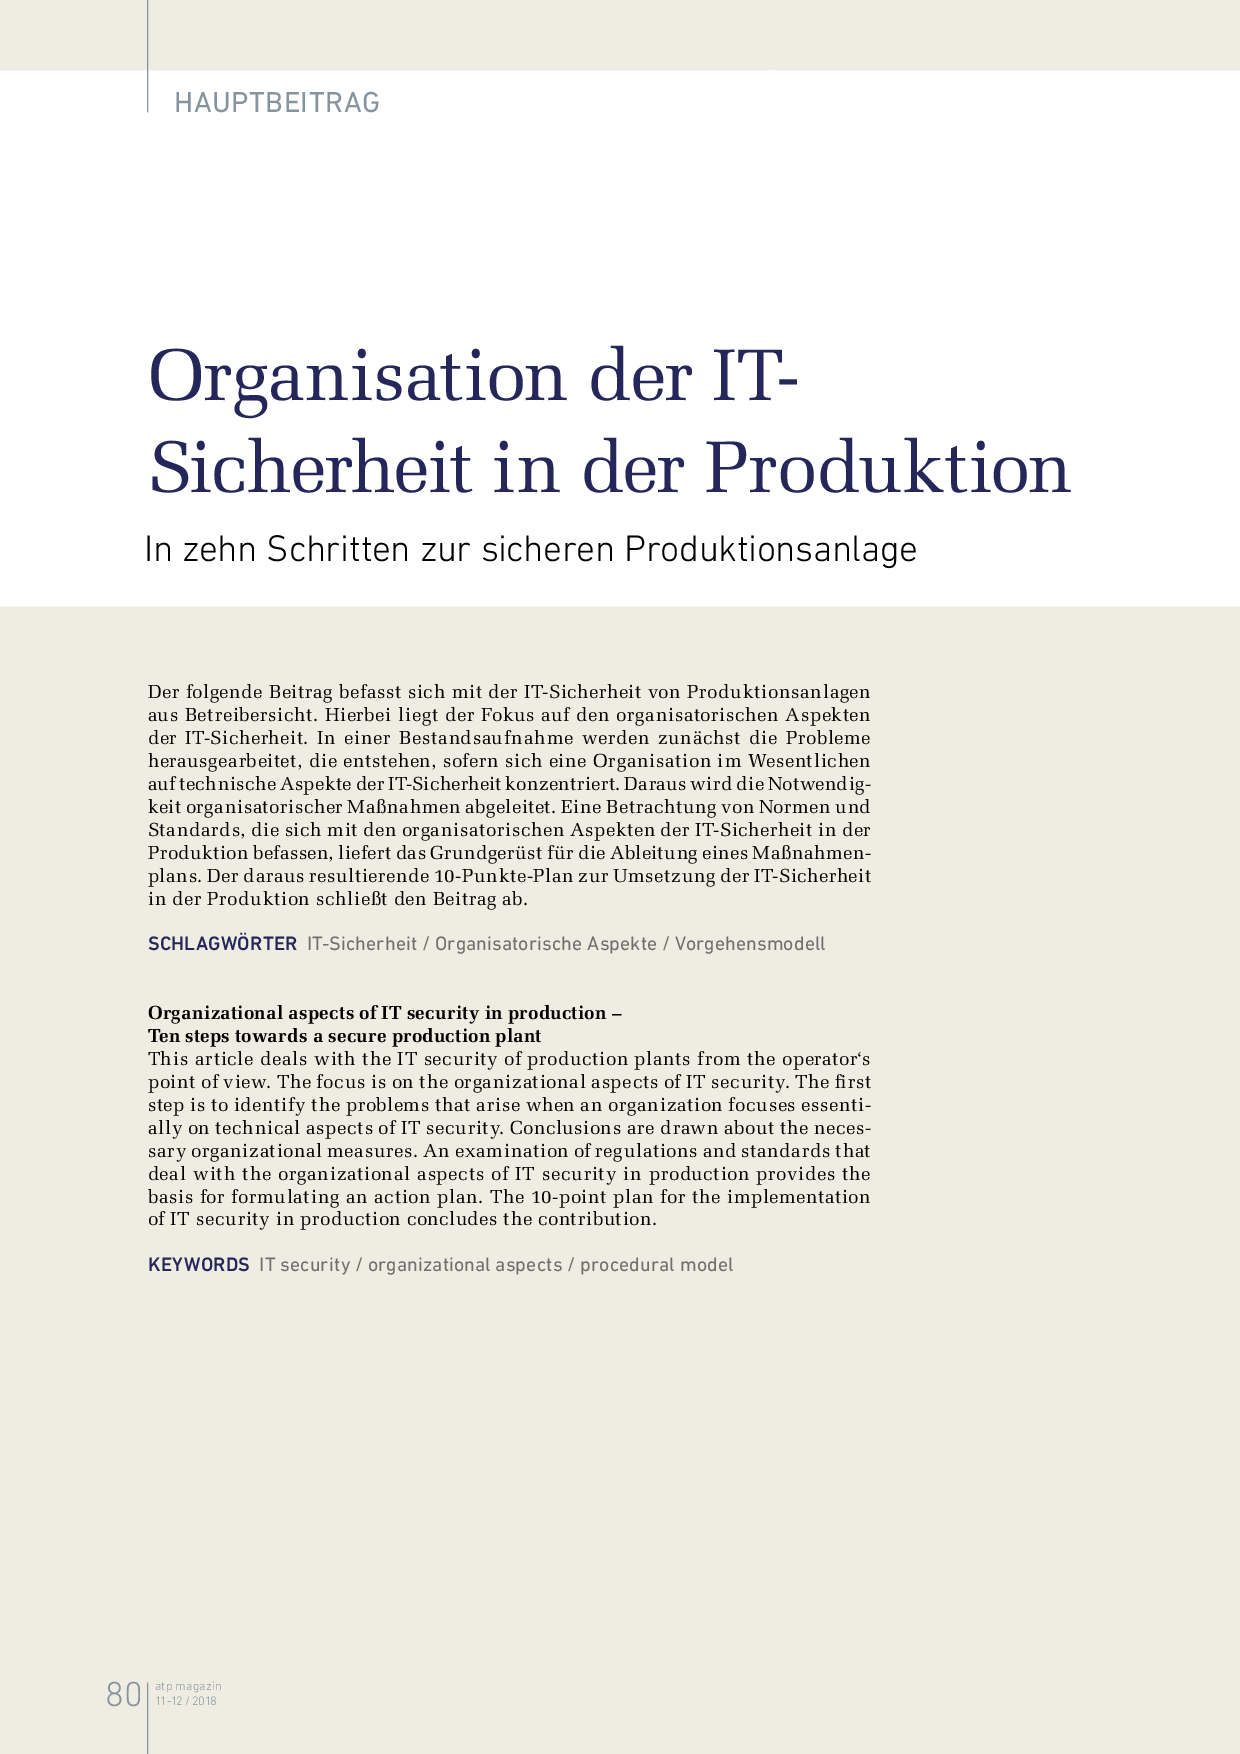 Organisation der IT-Sicherheit in der Produktion